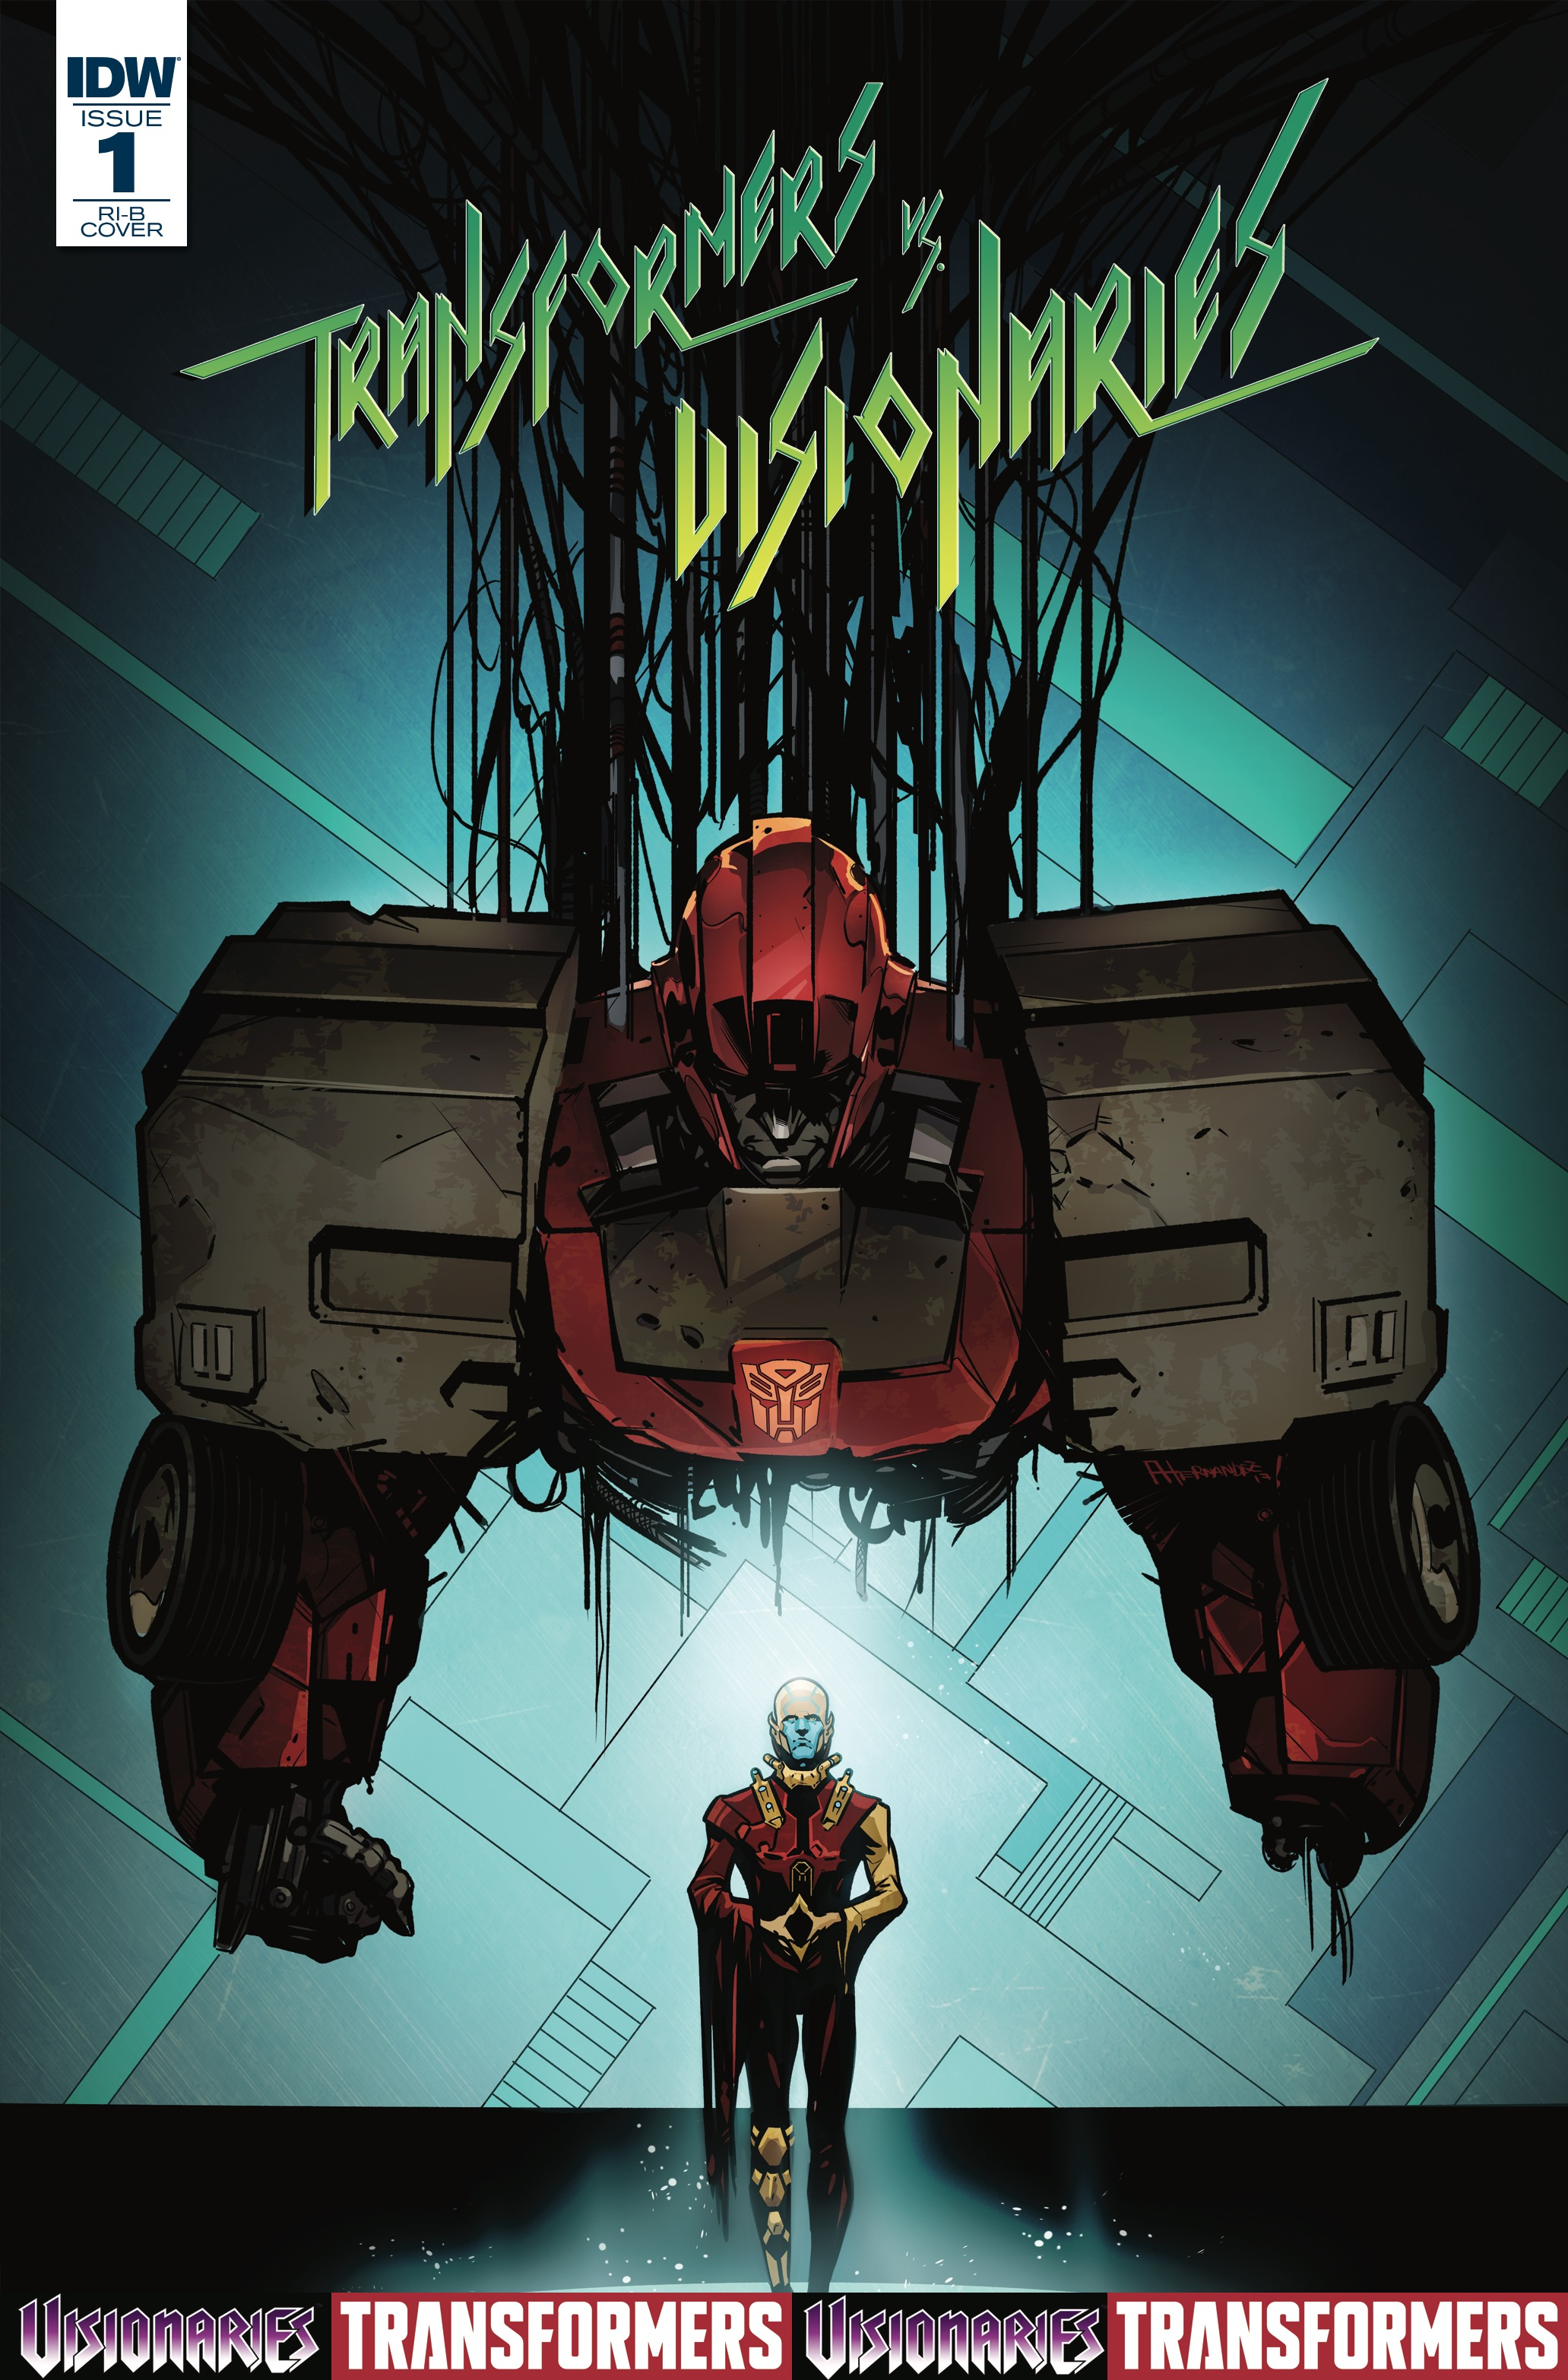 idw announces visionaries  transformers comic transformers news tfw